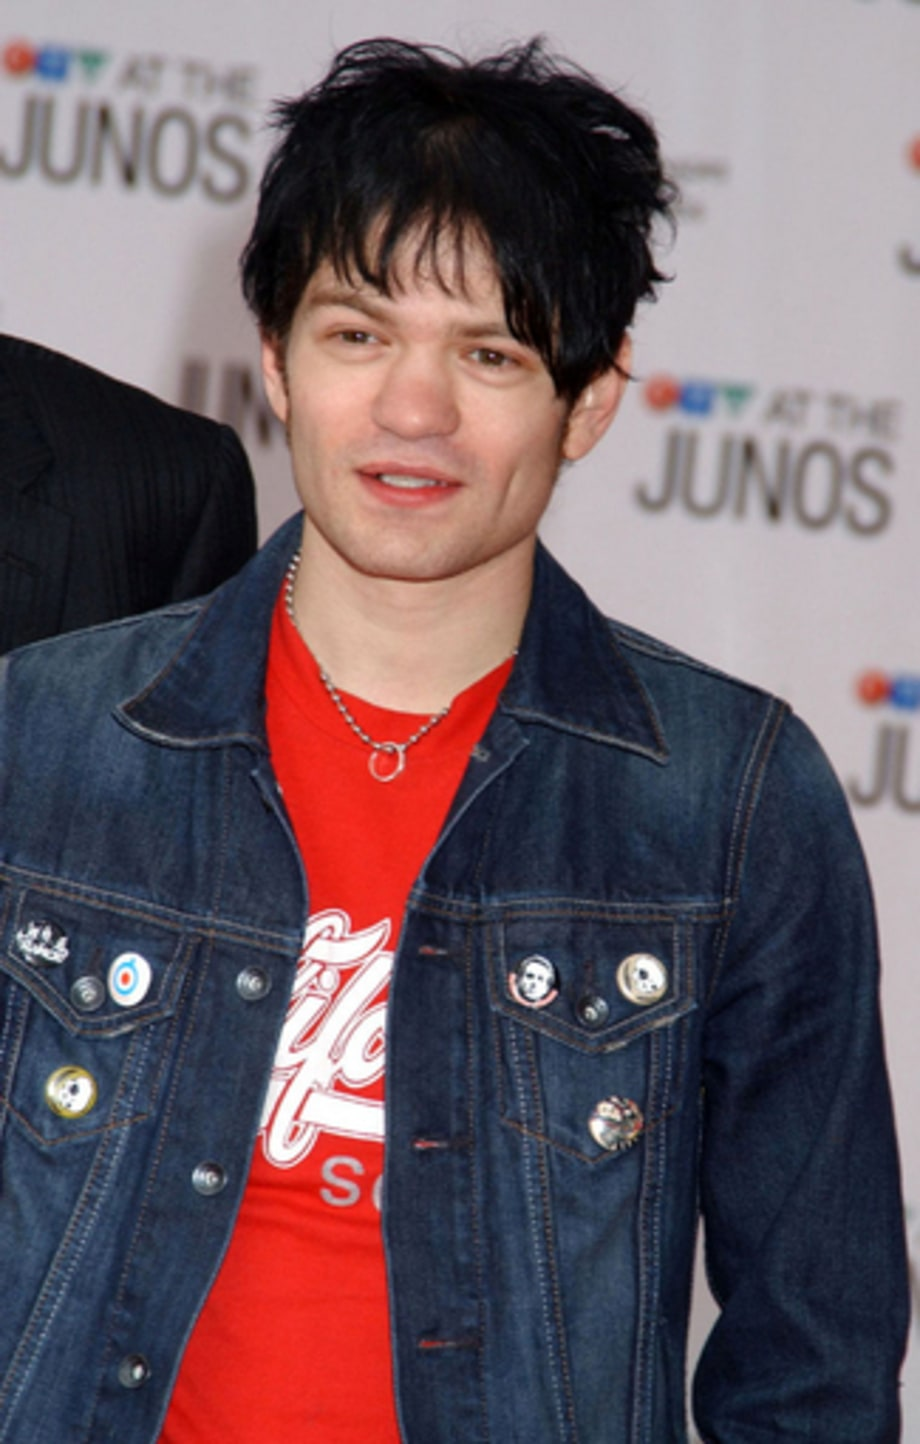 Sum 41 2 - 34th Annual Juno Awards 4/3/05 large